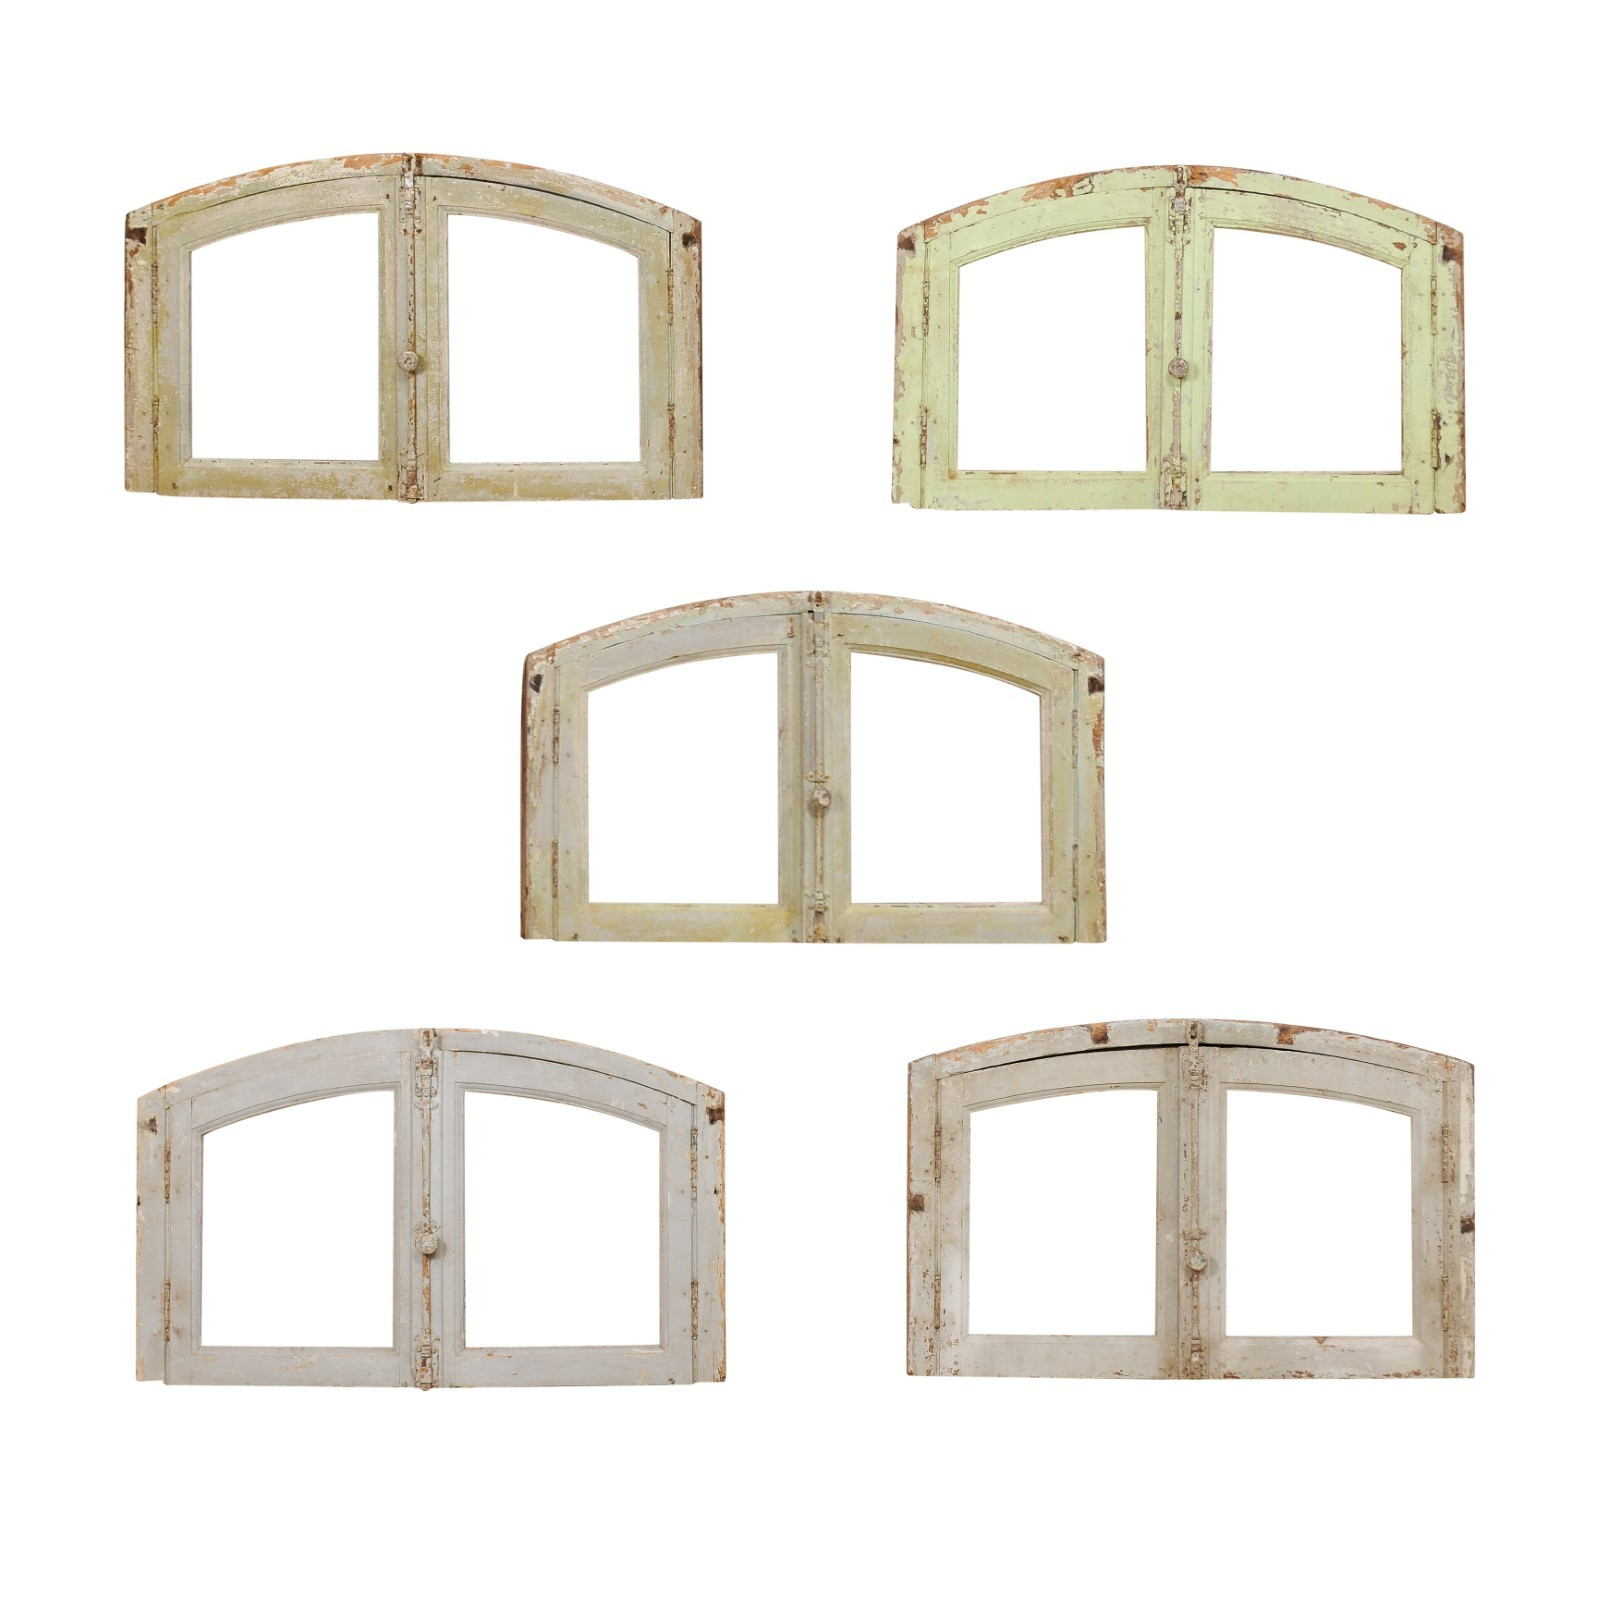 Various French Arched Window Transoms